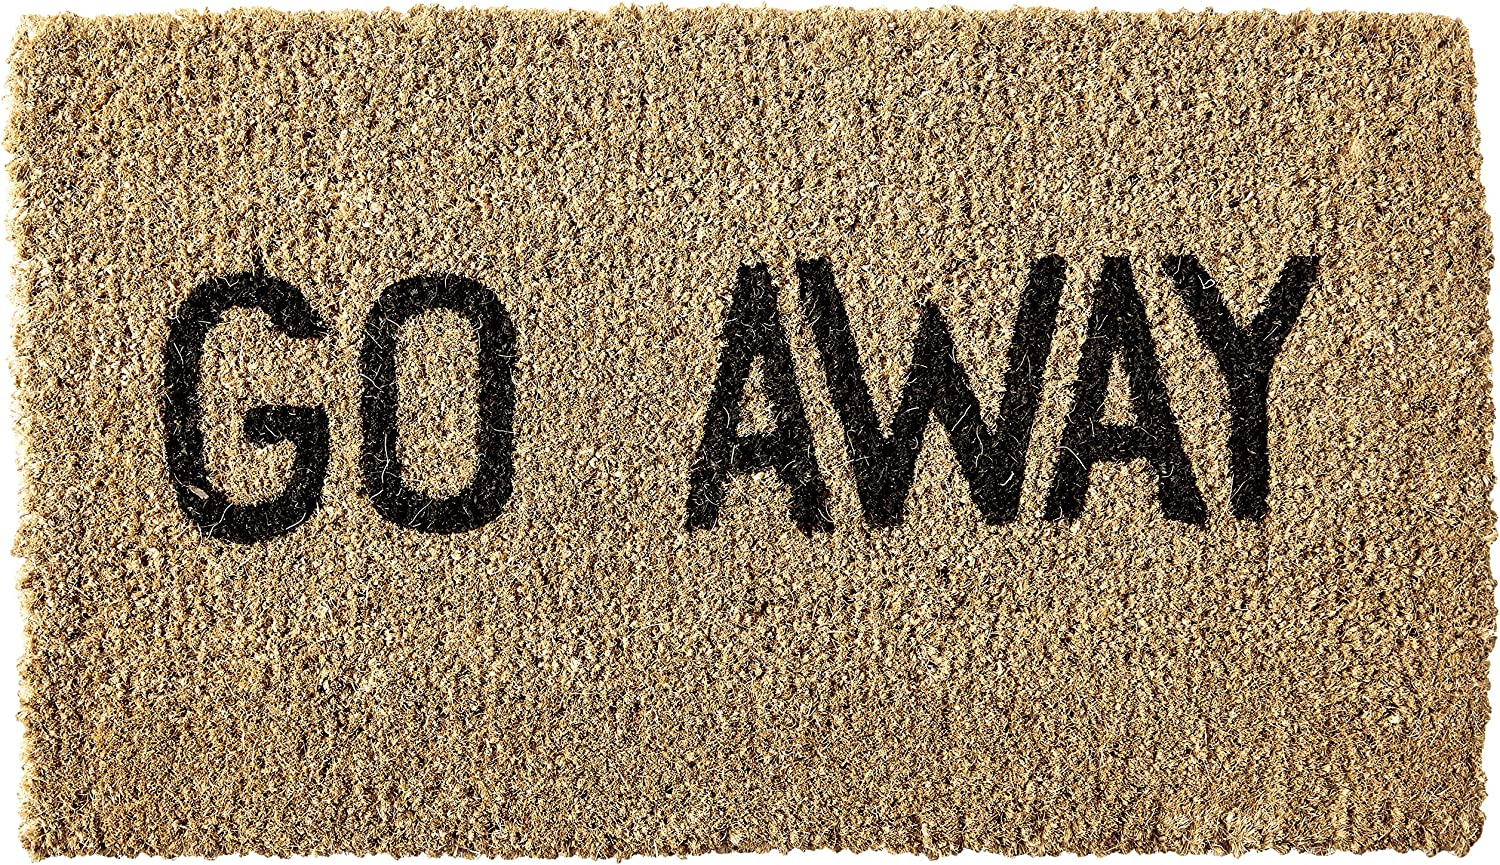 Kempf Go Away Doormat 16 by 27 by 1-Inch